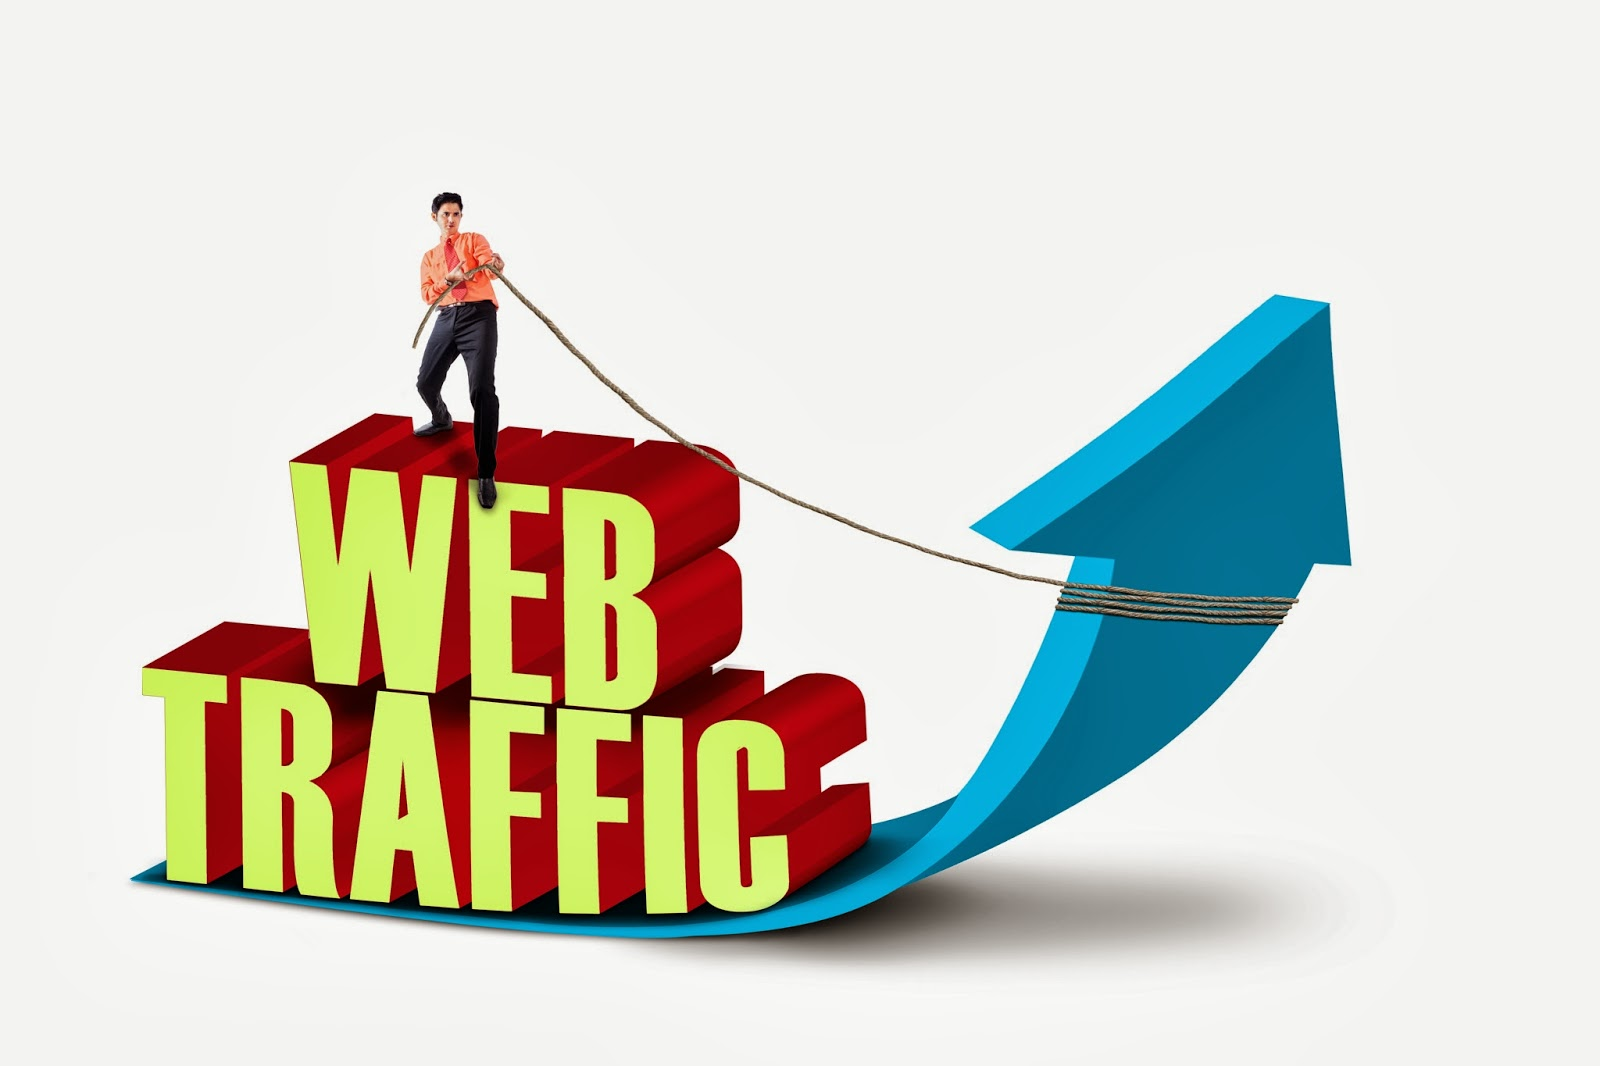 500,000 Website worldwide traffic